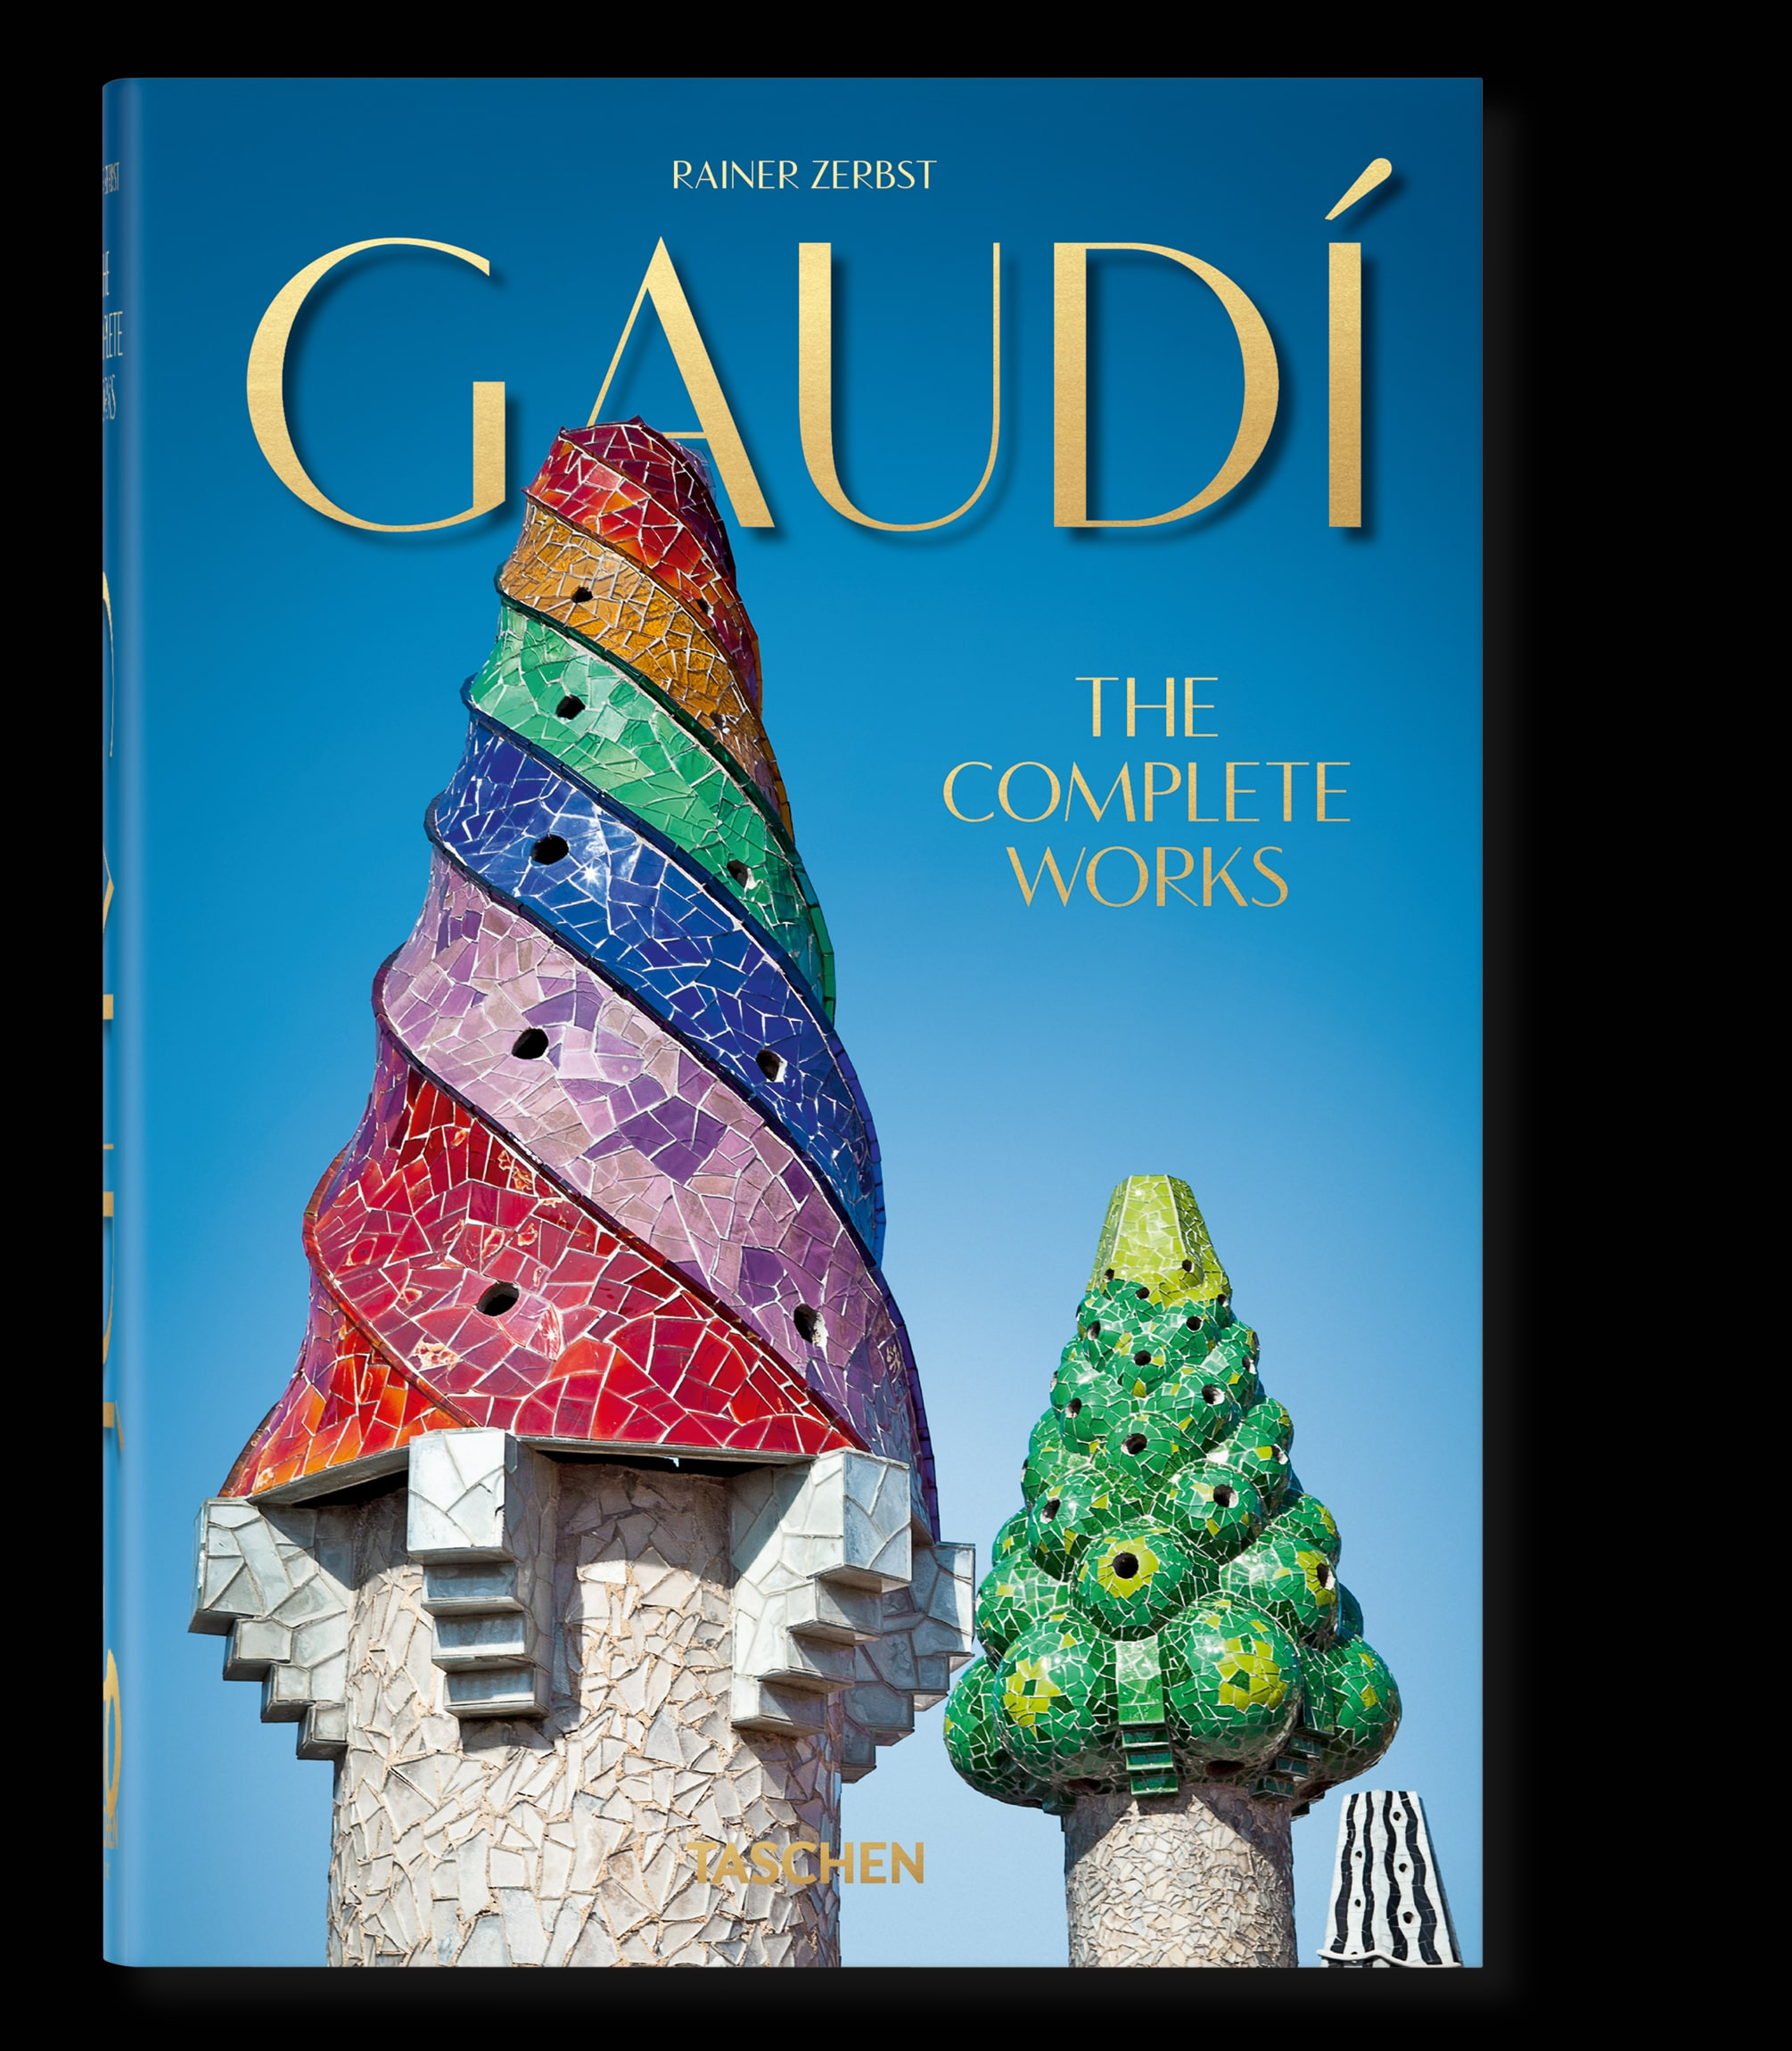 Book cover of Gaudi: The Complete Works. Blue background with cone shaped structures with colorful top halves.